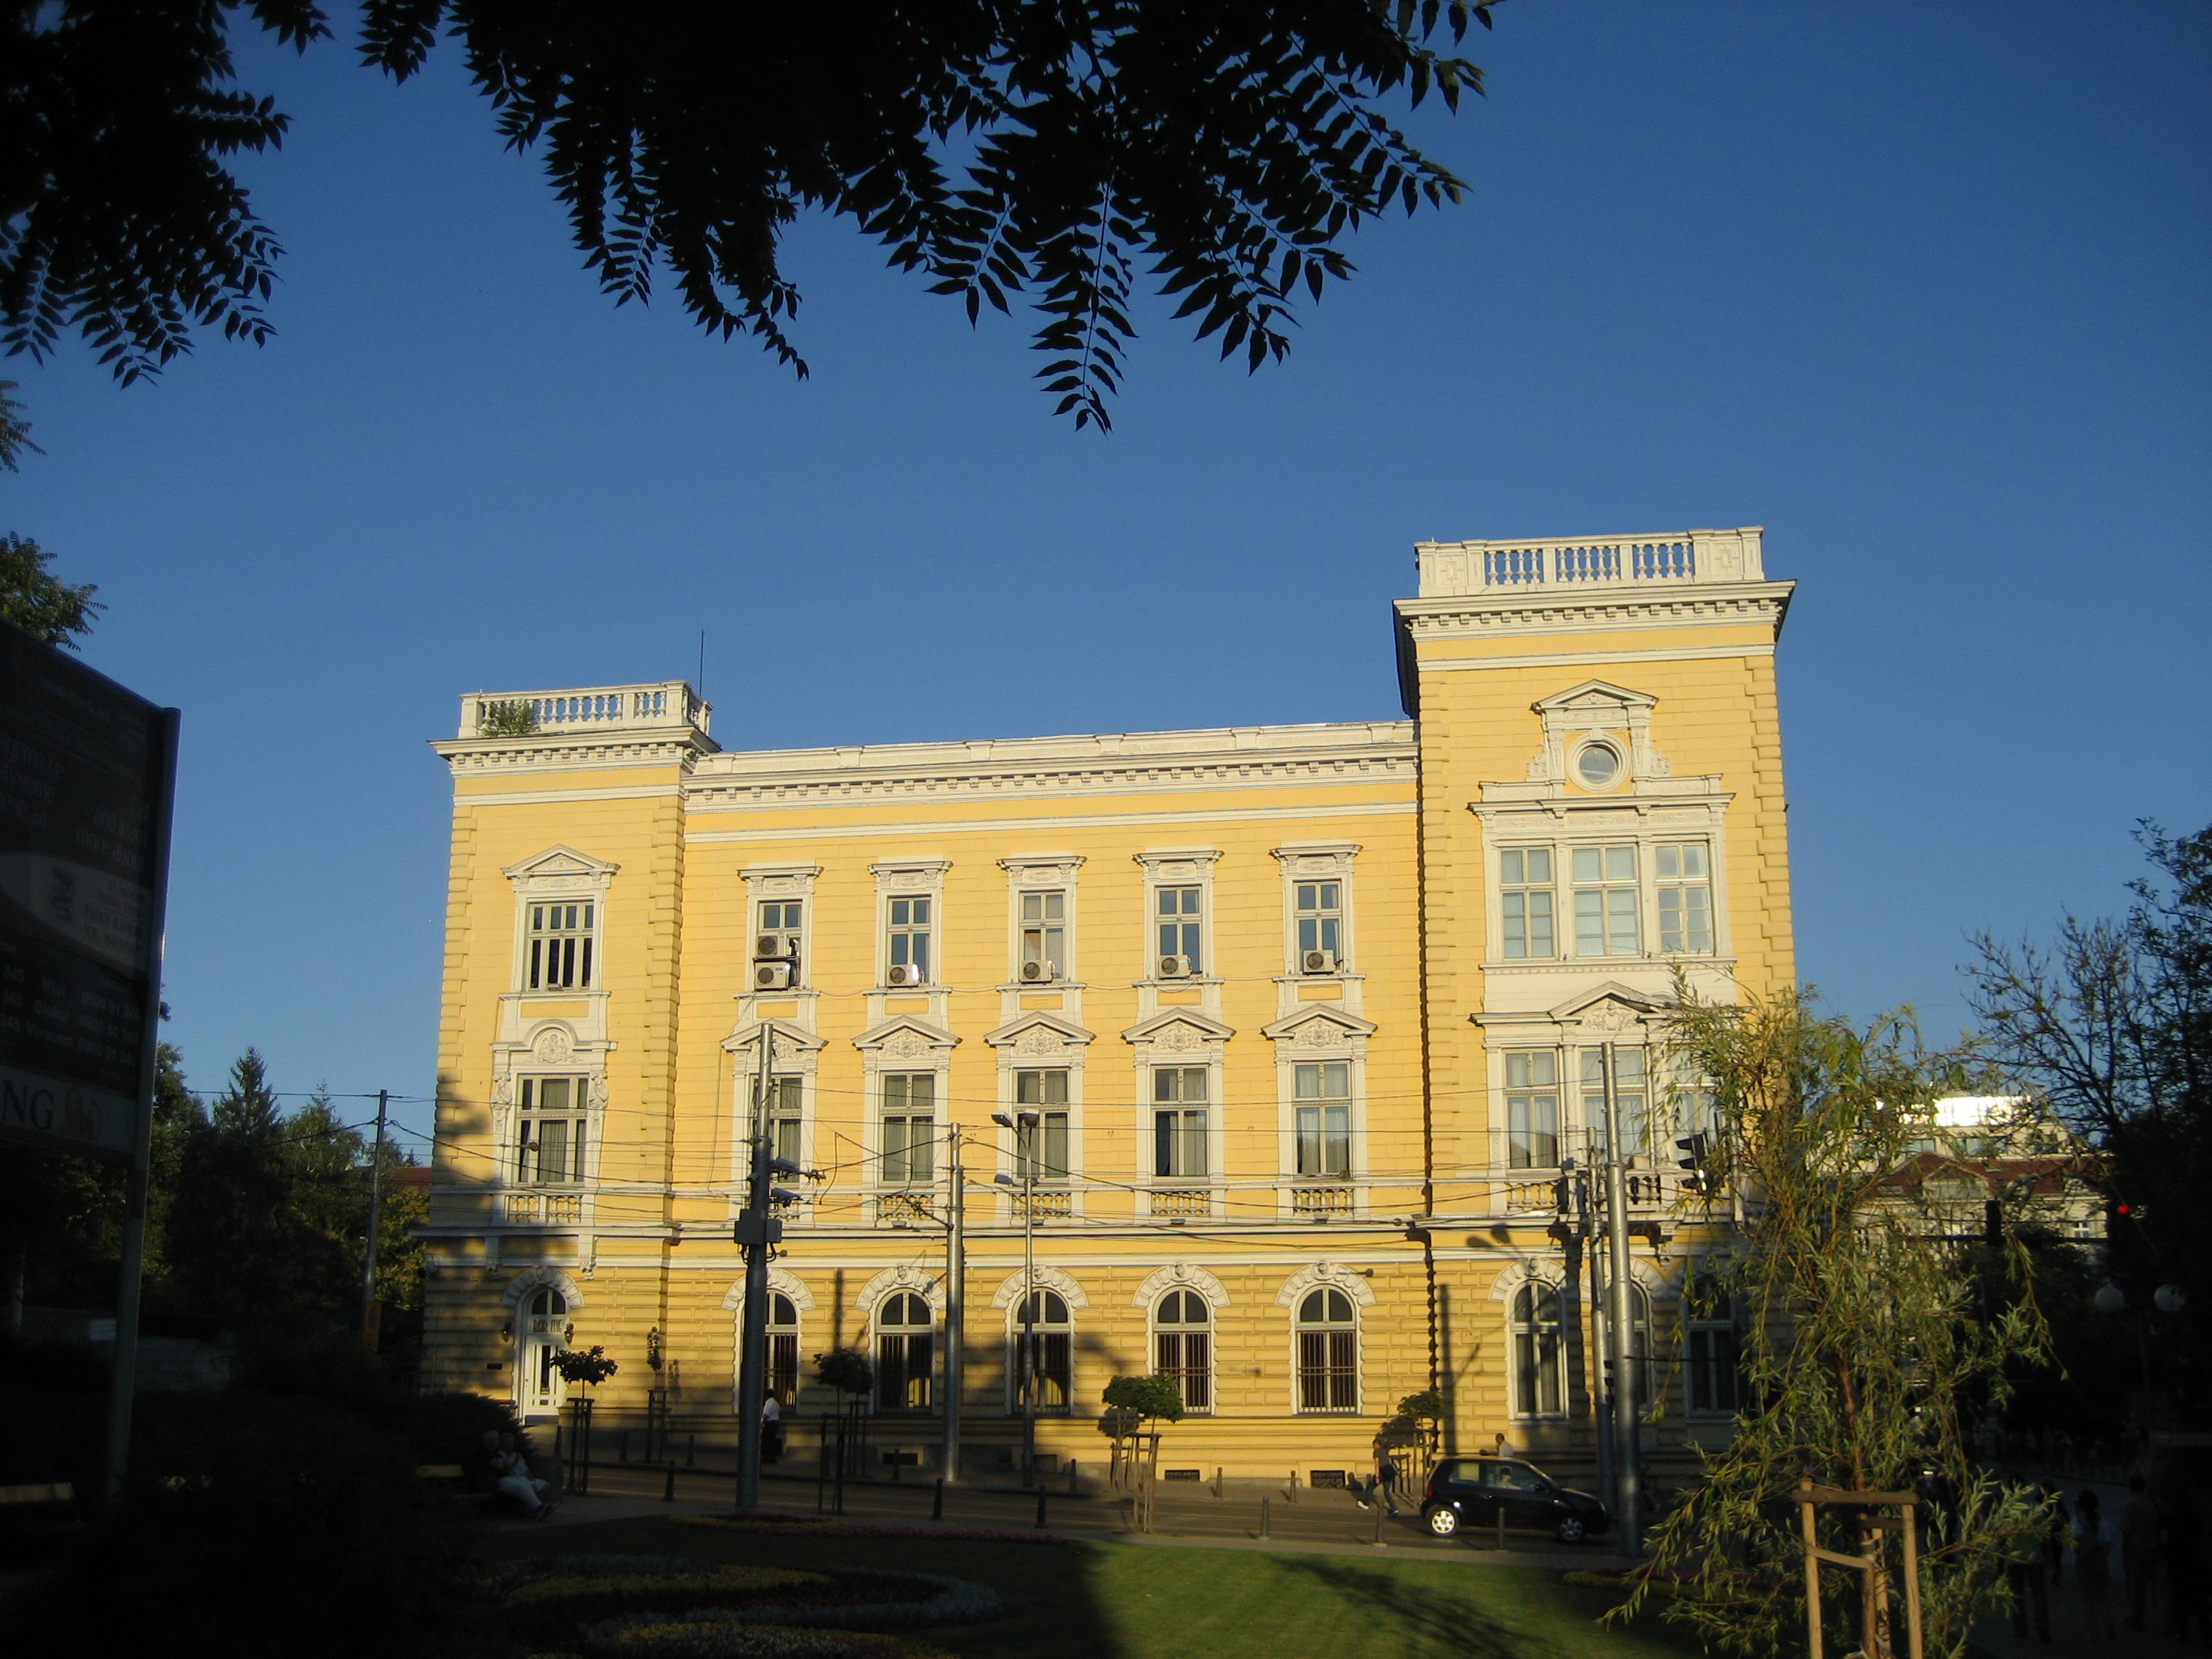 The Central Military Club